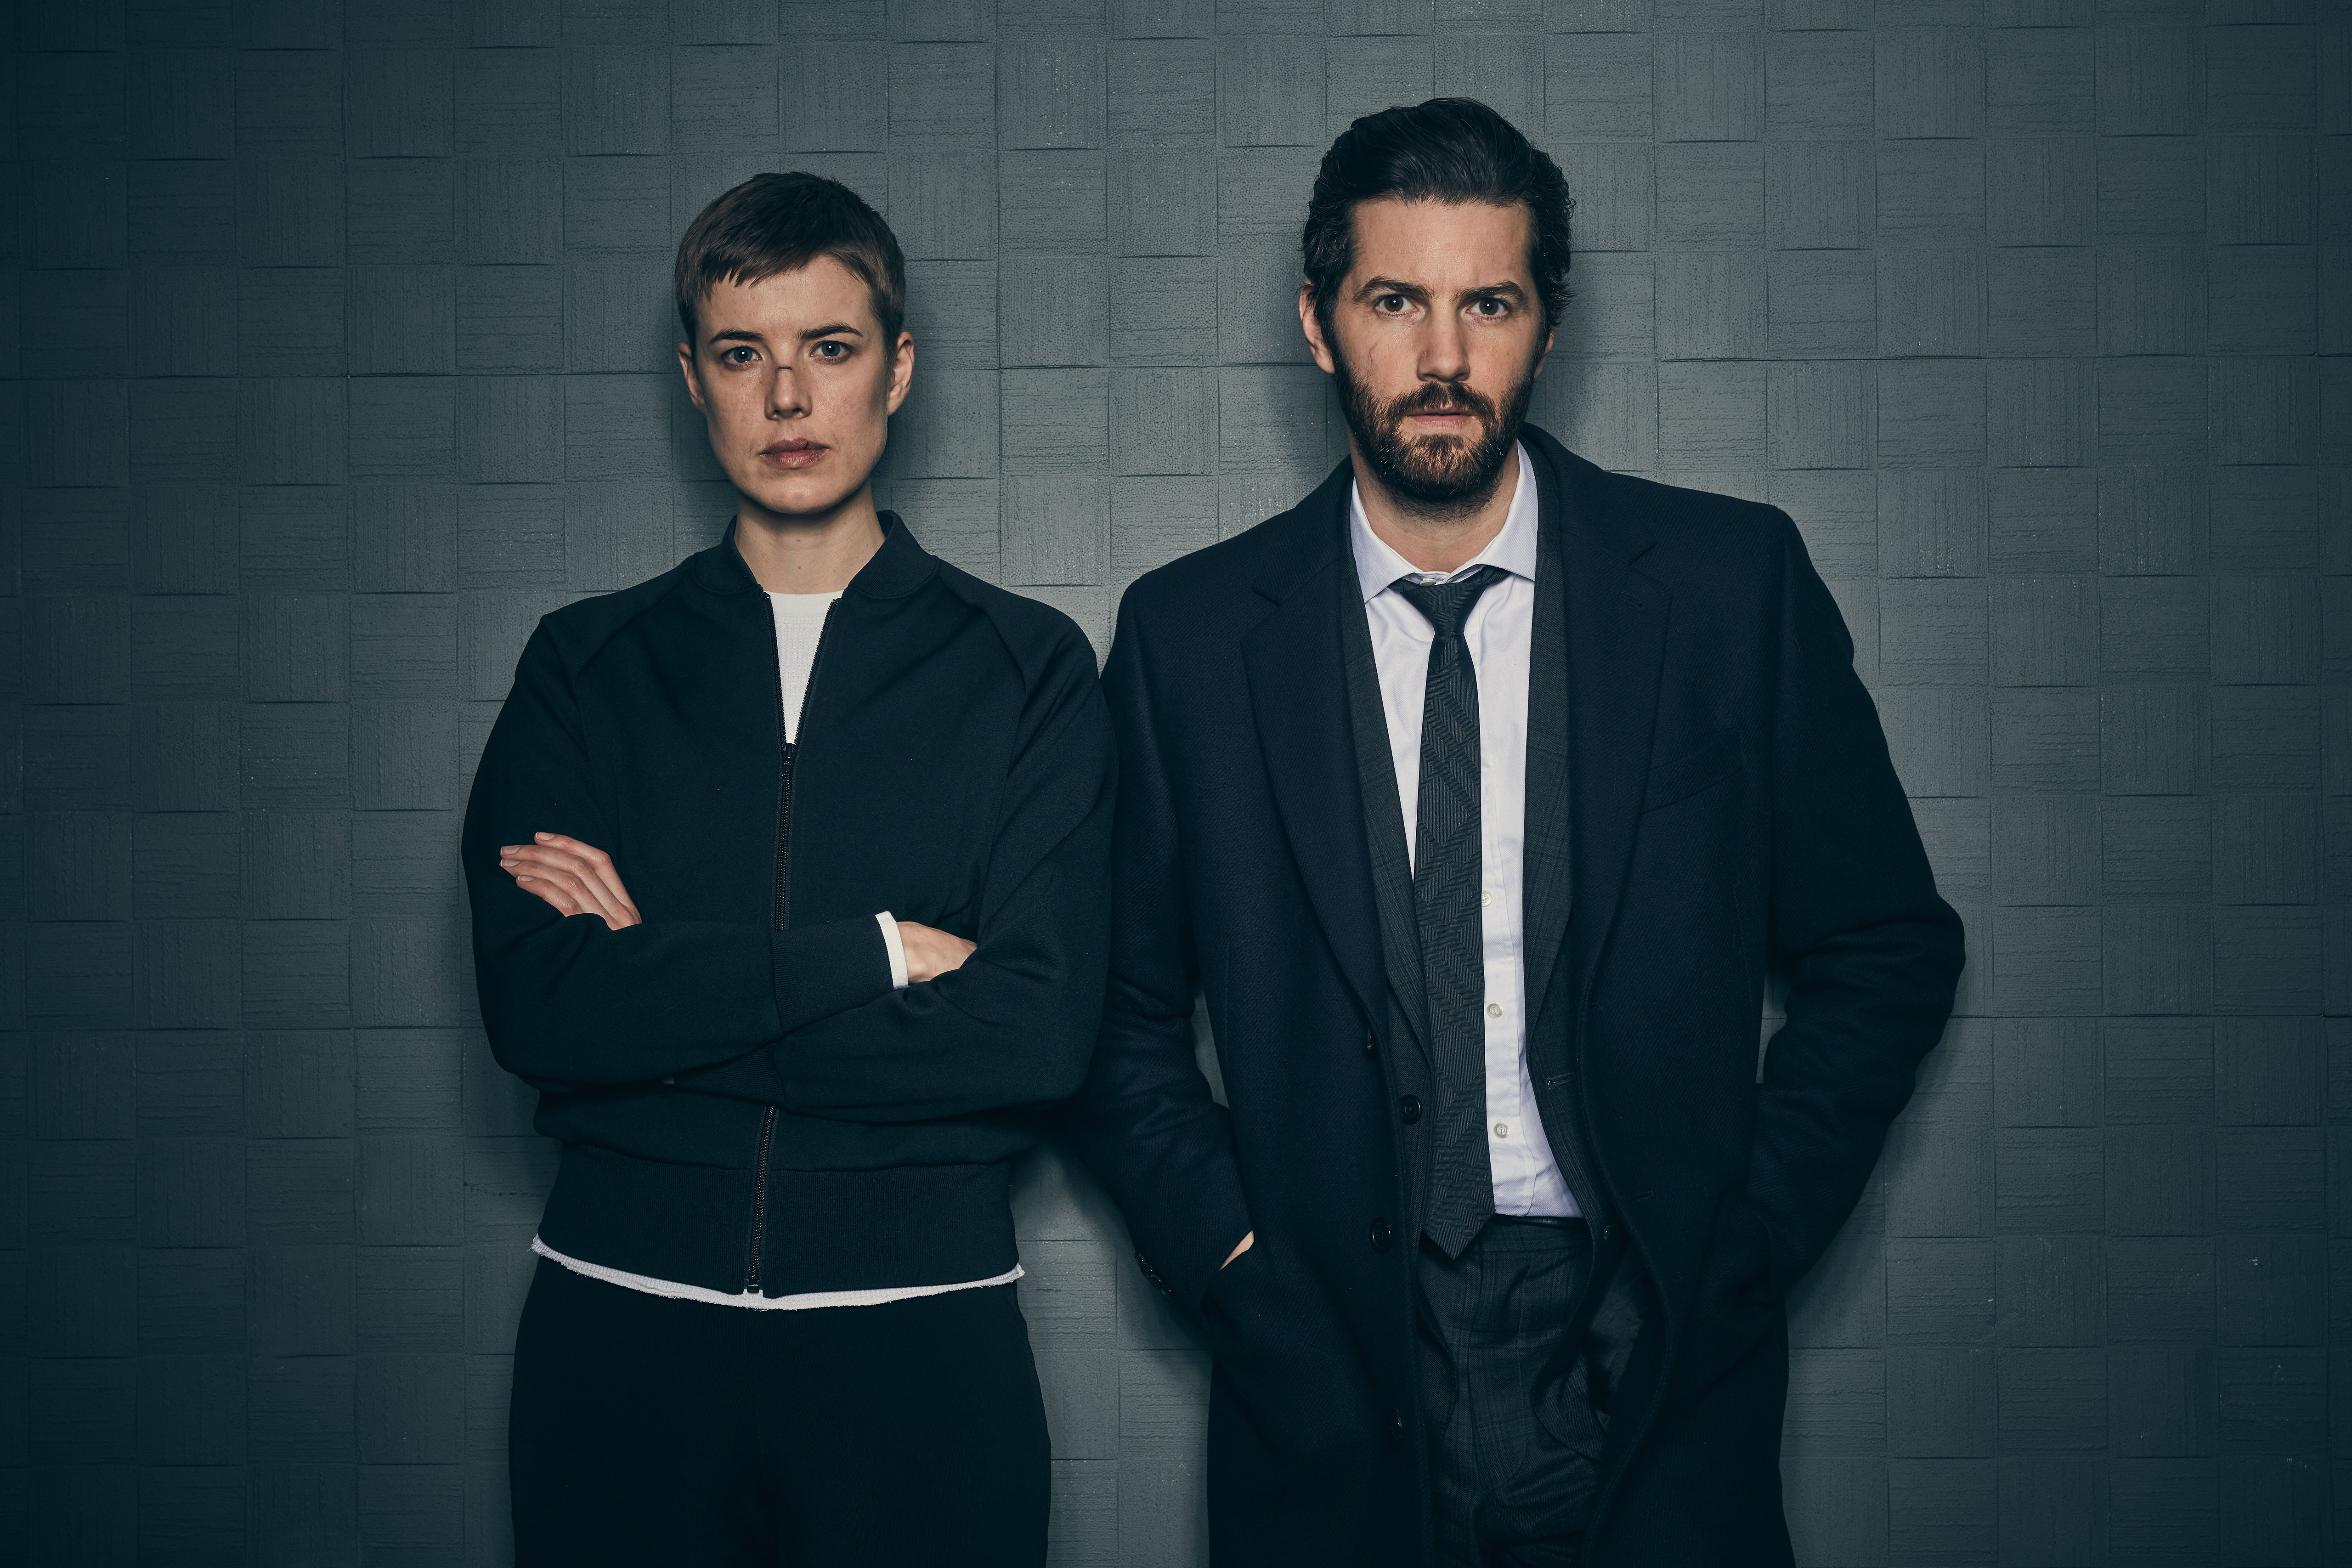 REVIEW: New BBC One drama Hard Sun episode 1